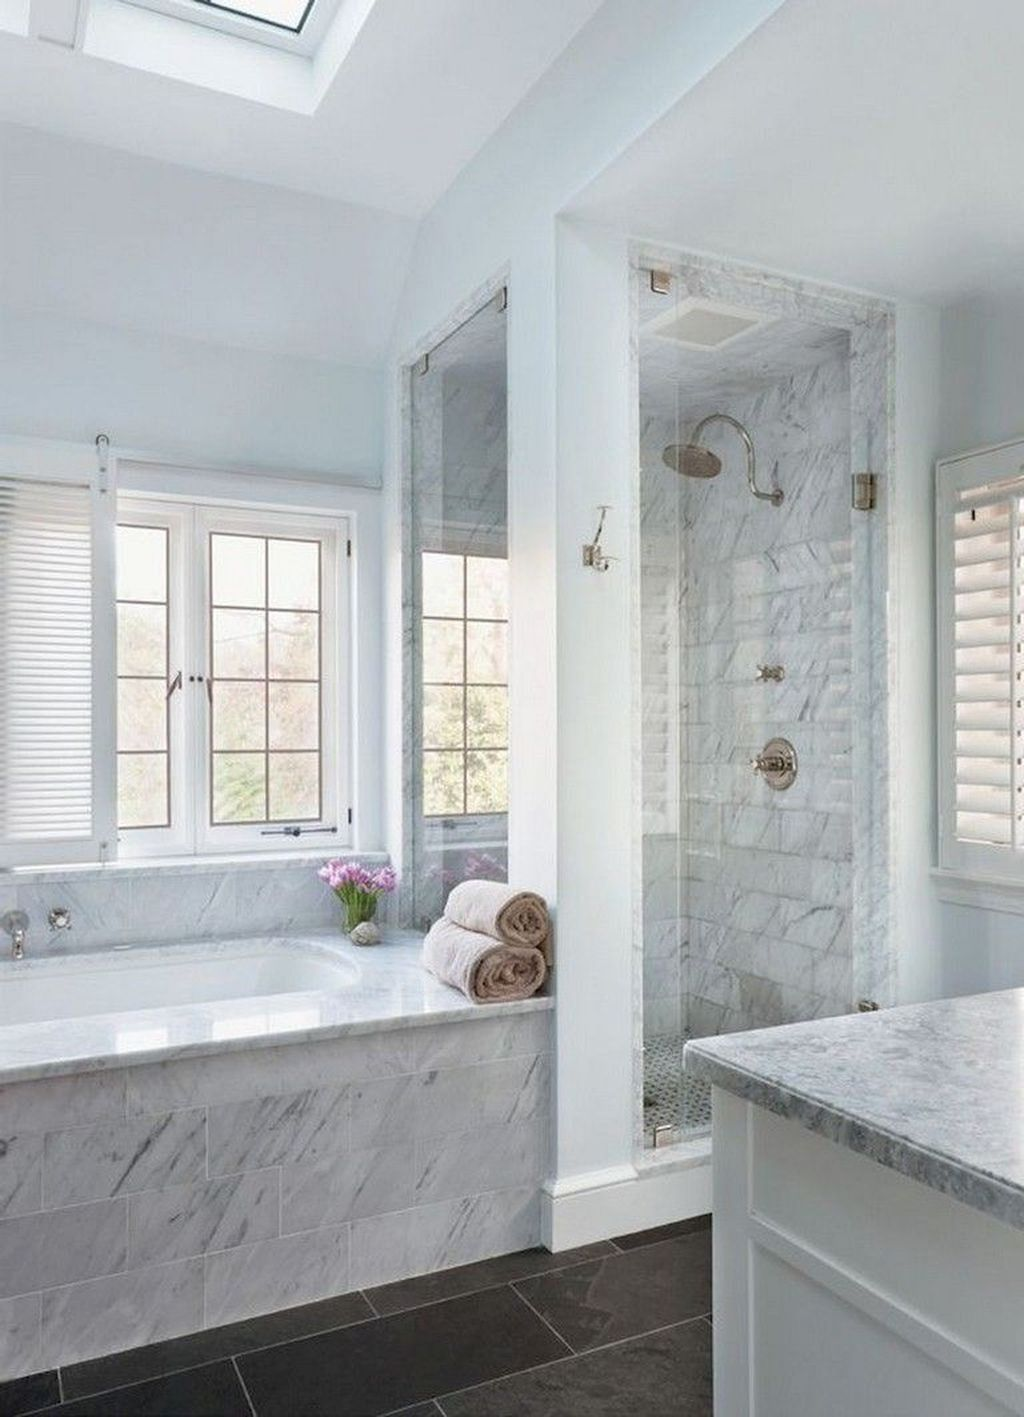 48 Simple Master Bathroom Renovation Ideas #dreambathrooms